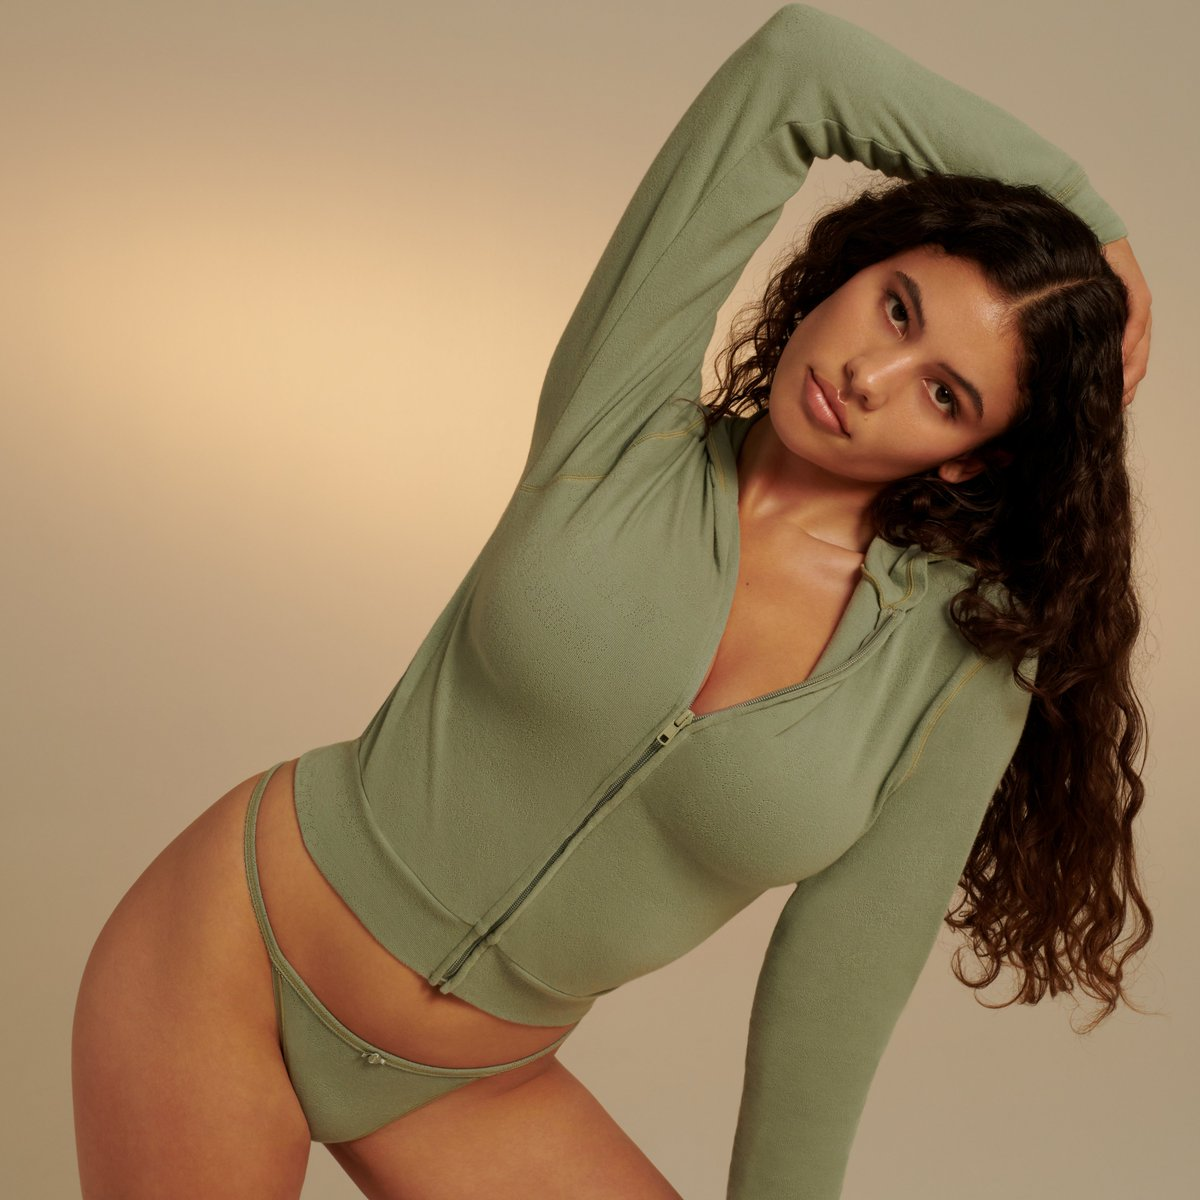 Isabella Carr wears the Pointelle Zip Up Hoodie and T-String Thong in Mineral. Our new SKIMS SKIMS SKIMS collection is pretty, romantic, and softer-than-soft. Get it when it drops May 14 at 12PM ET.  Join the waitlist for early access to shop: https://t.co/YijdXcO52W https://t.co/ebwA8sB7fe